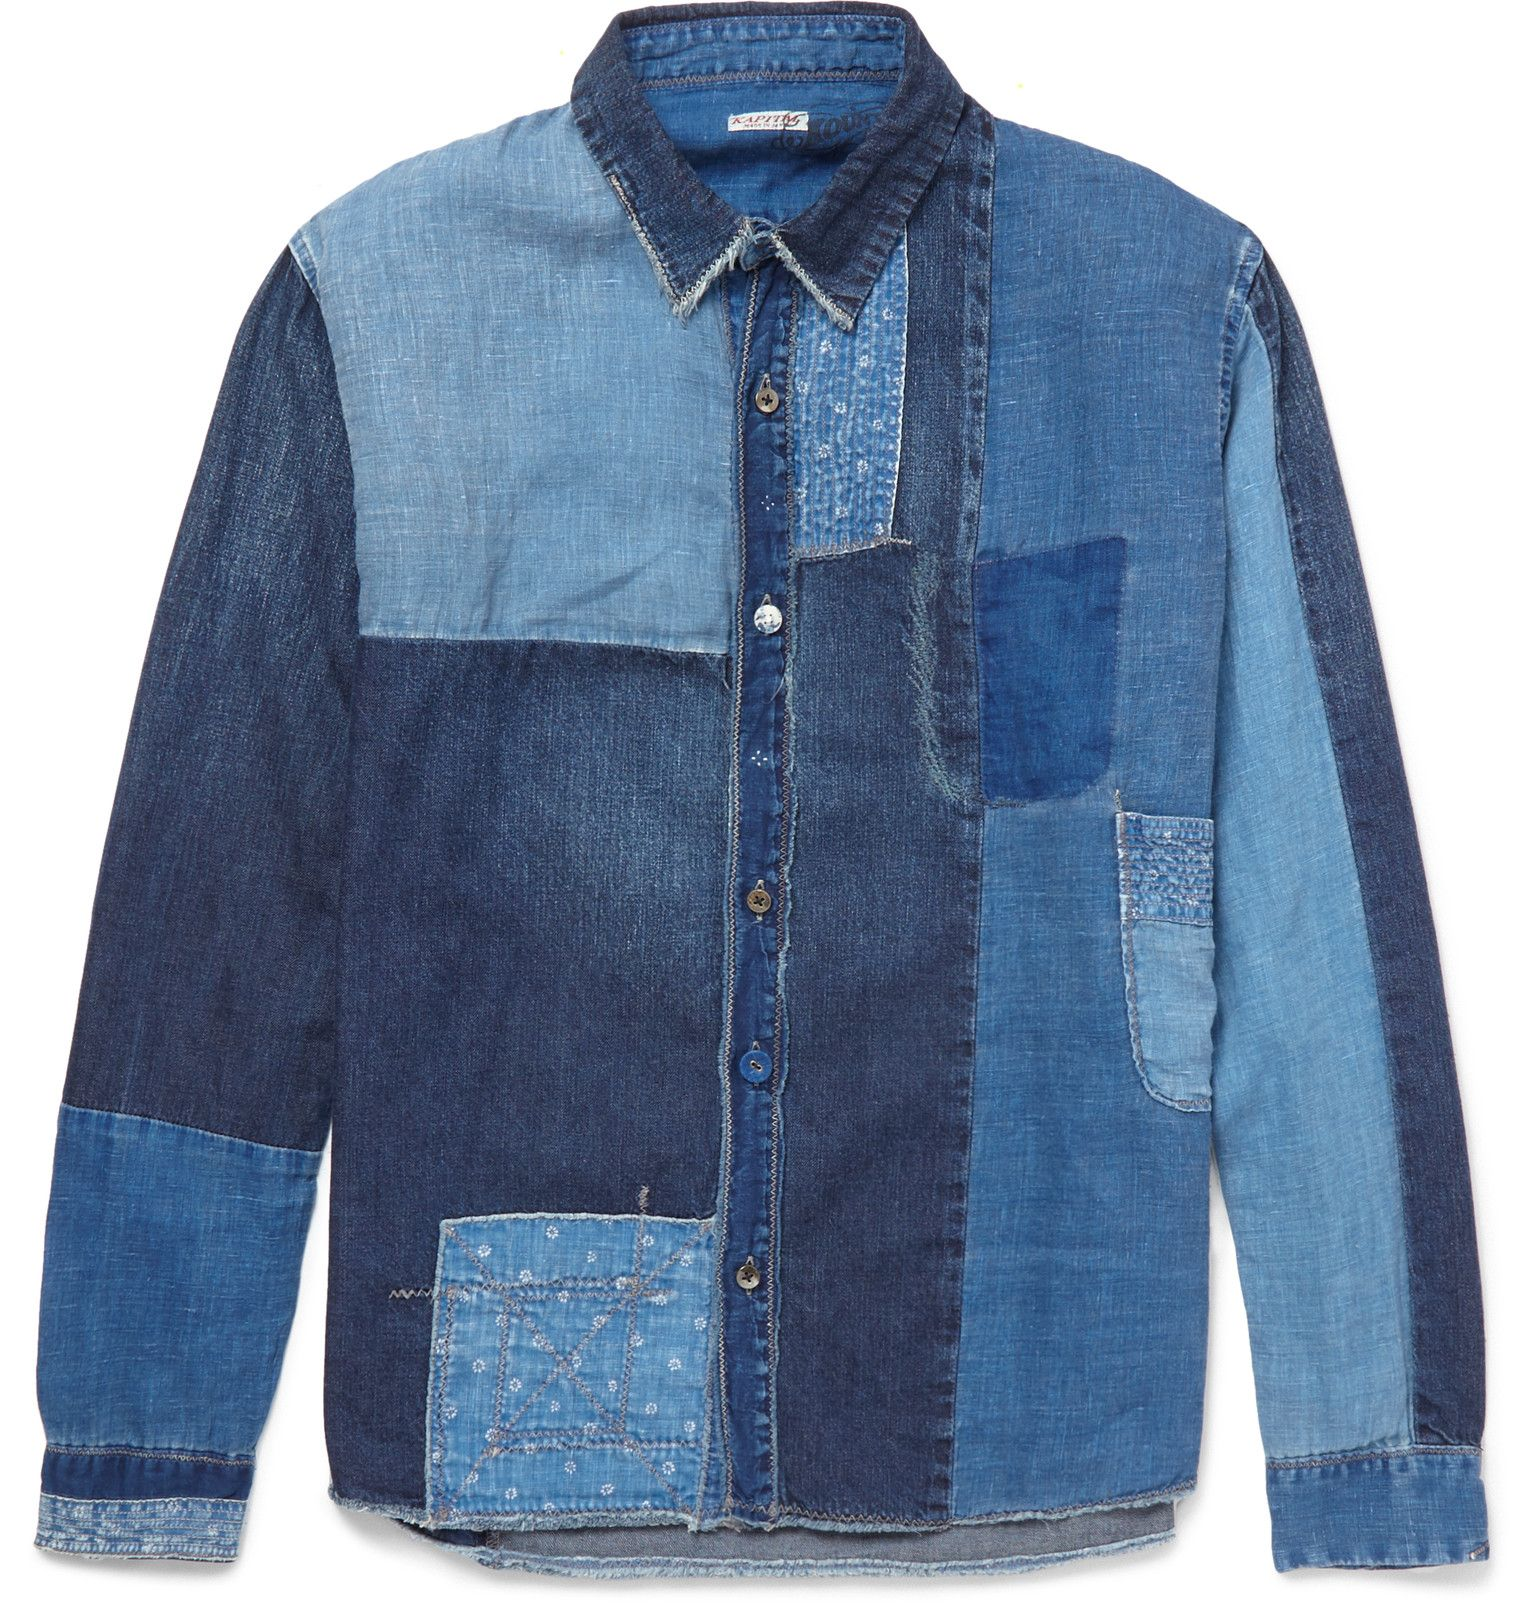 A mainstay of the Japanese menswear scene, KAPITAL takes its name from the city of Kojima, dubbed the denim capital of the nation. The 'Katmandu' shirt is one of the brand's signature pieces and this version is revamped in patchwork panels for the latest collection. Crafted in a neat fit, it has a slightly shorter length, casting a trim profile.